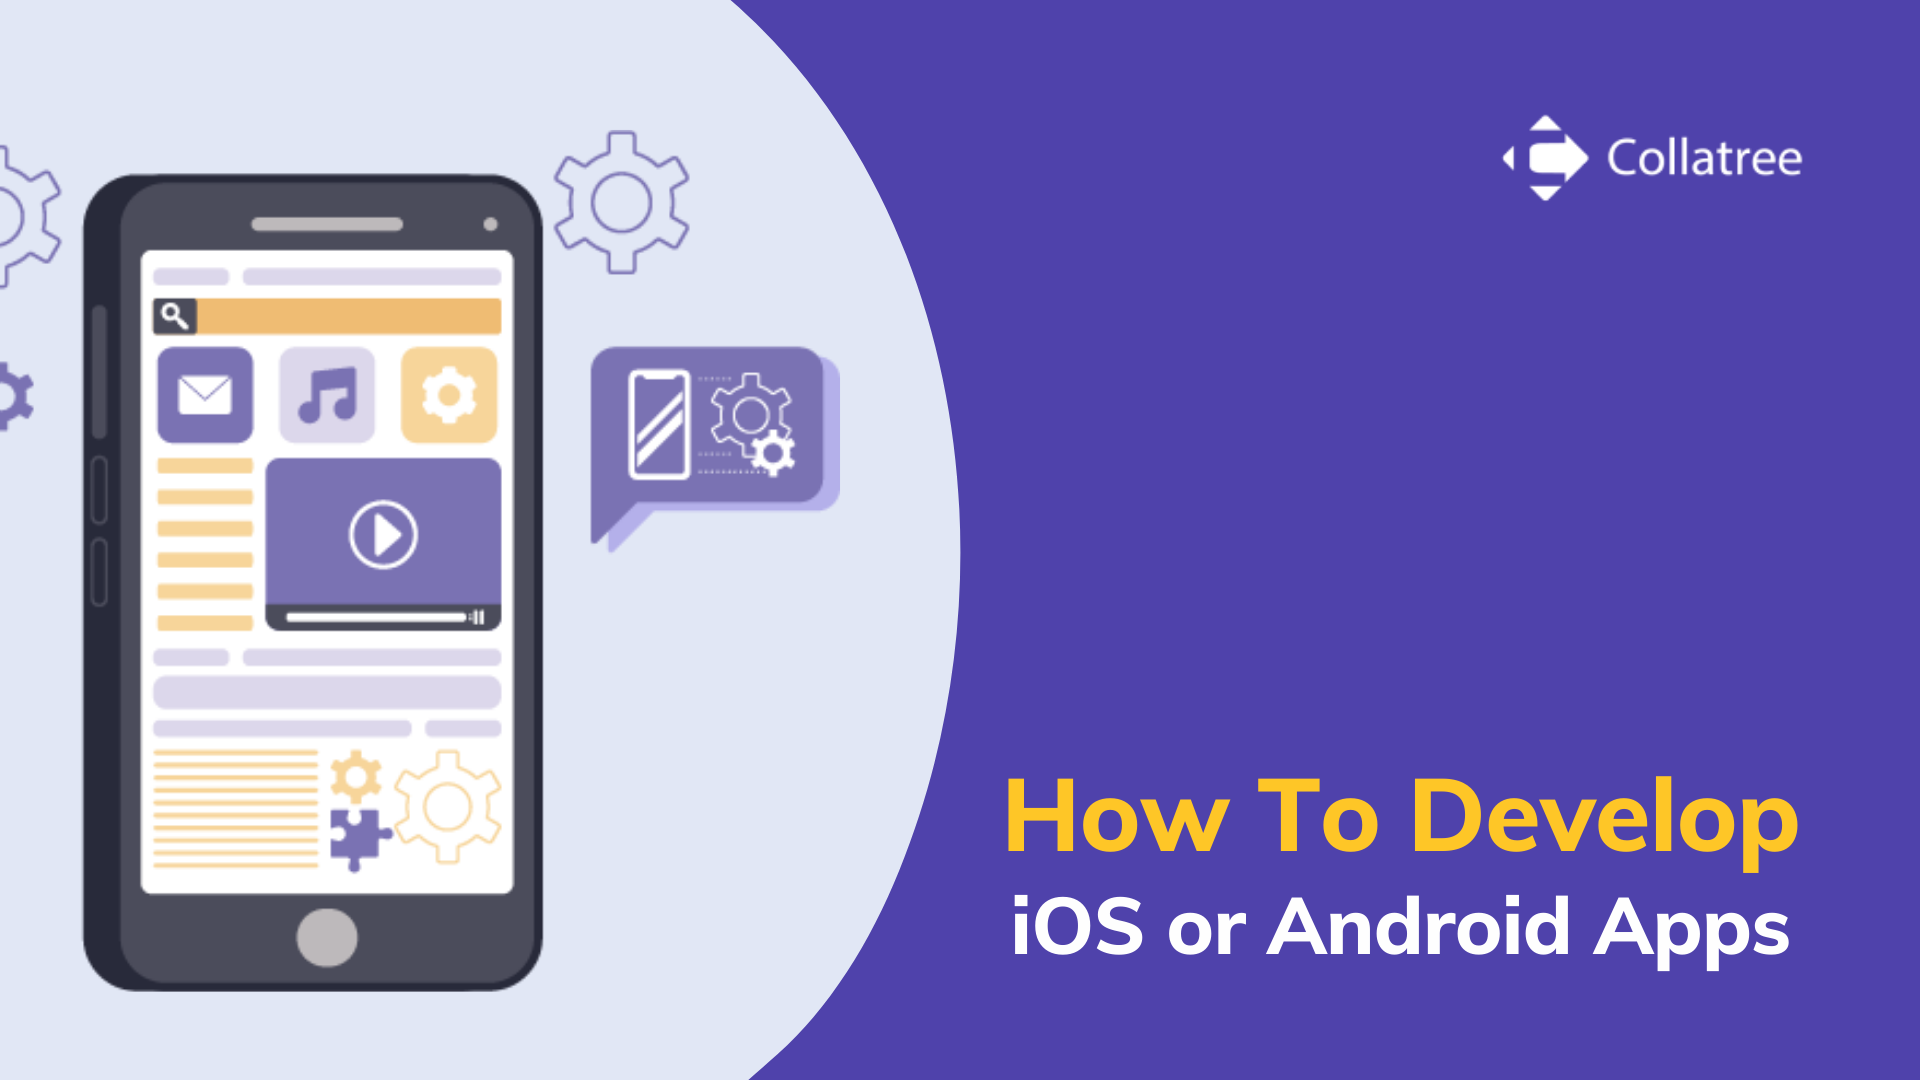 How To Develop iOS or Android Apps On Windows?